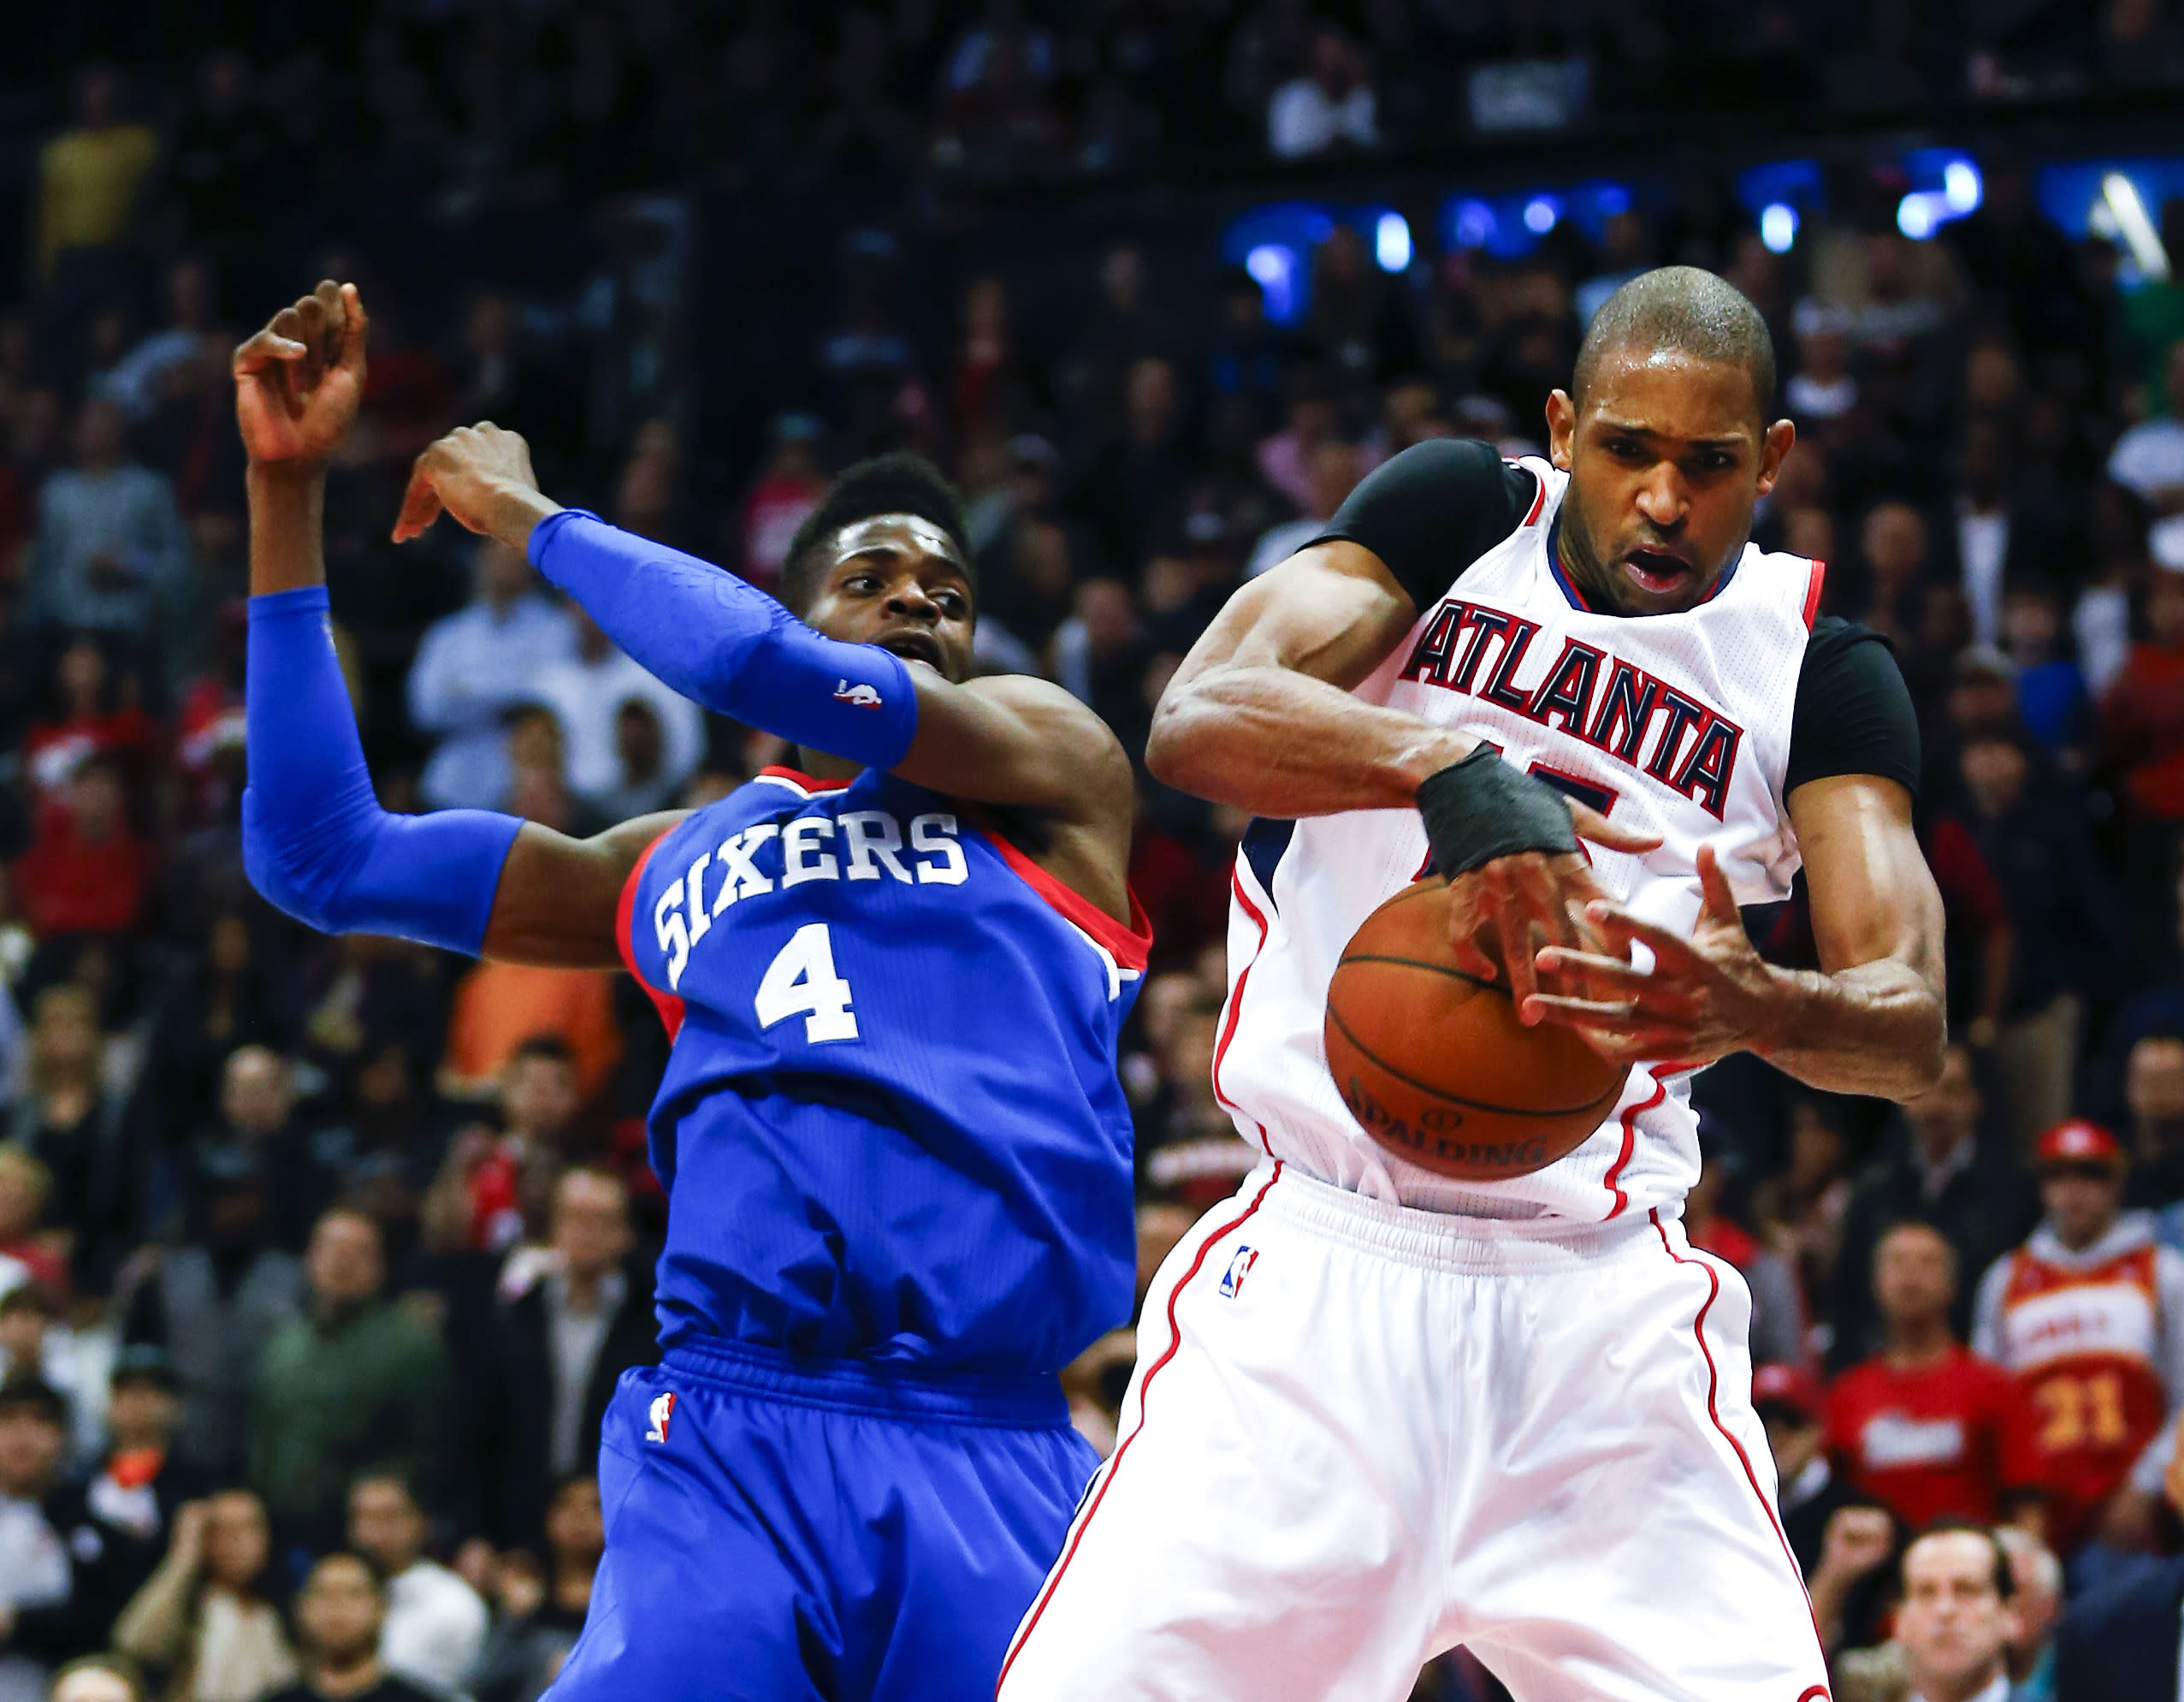 Horford, Hawks extend streak with 91-85 win over 76ers